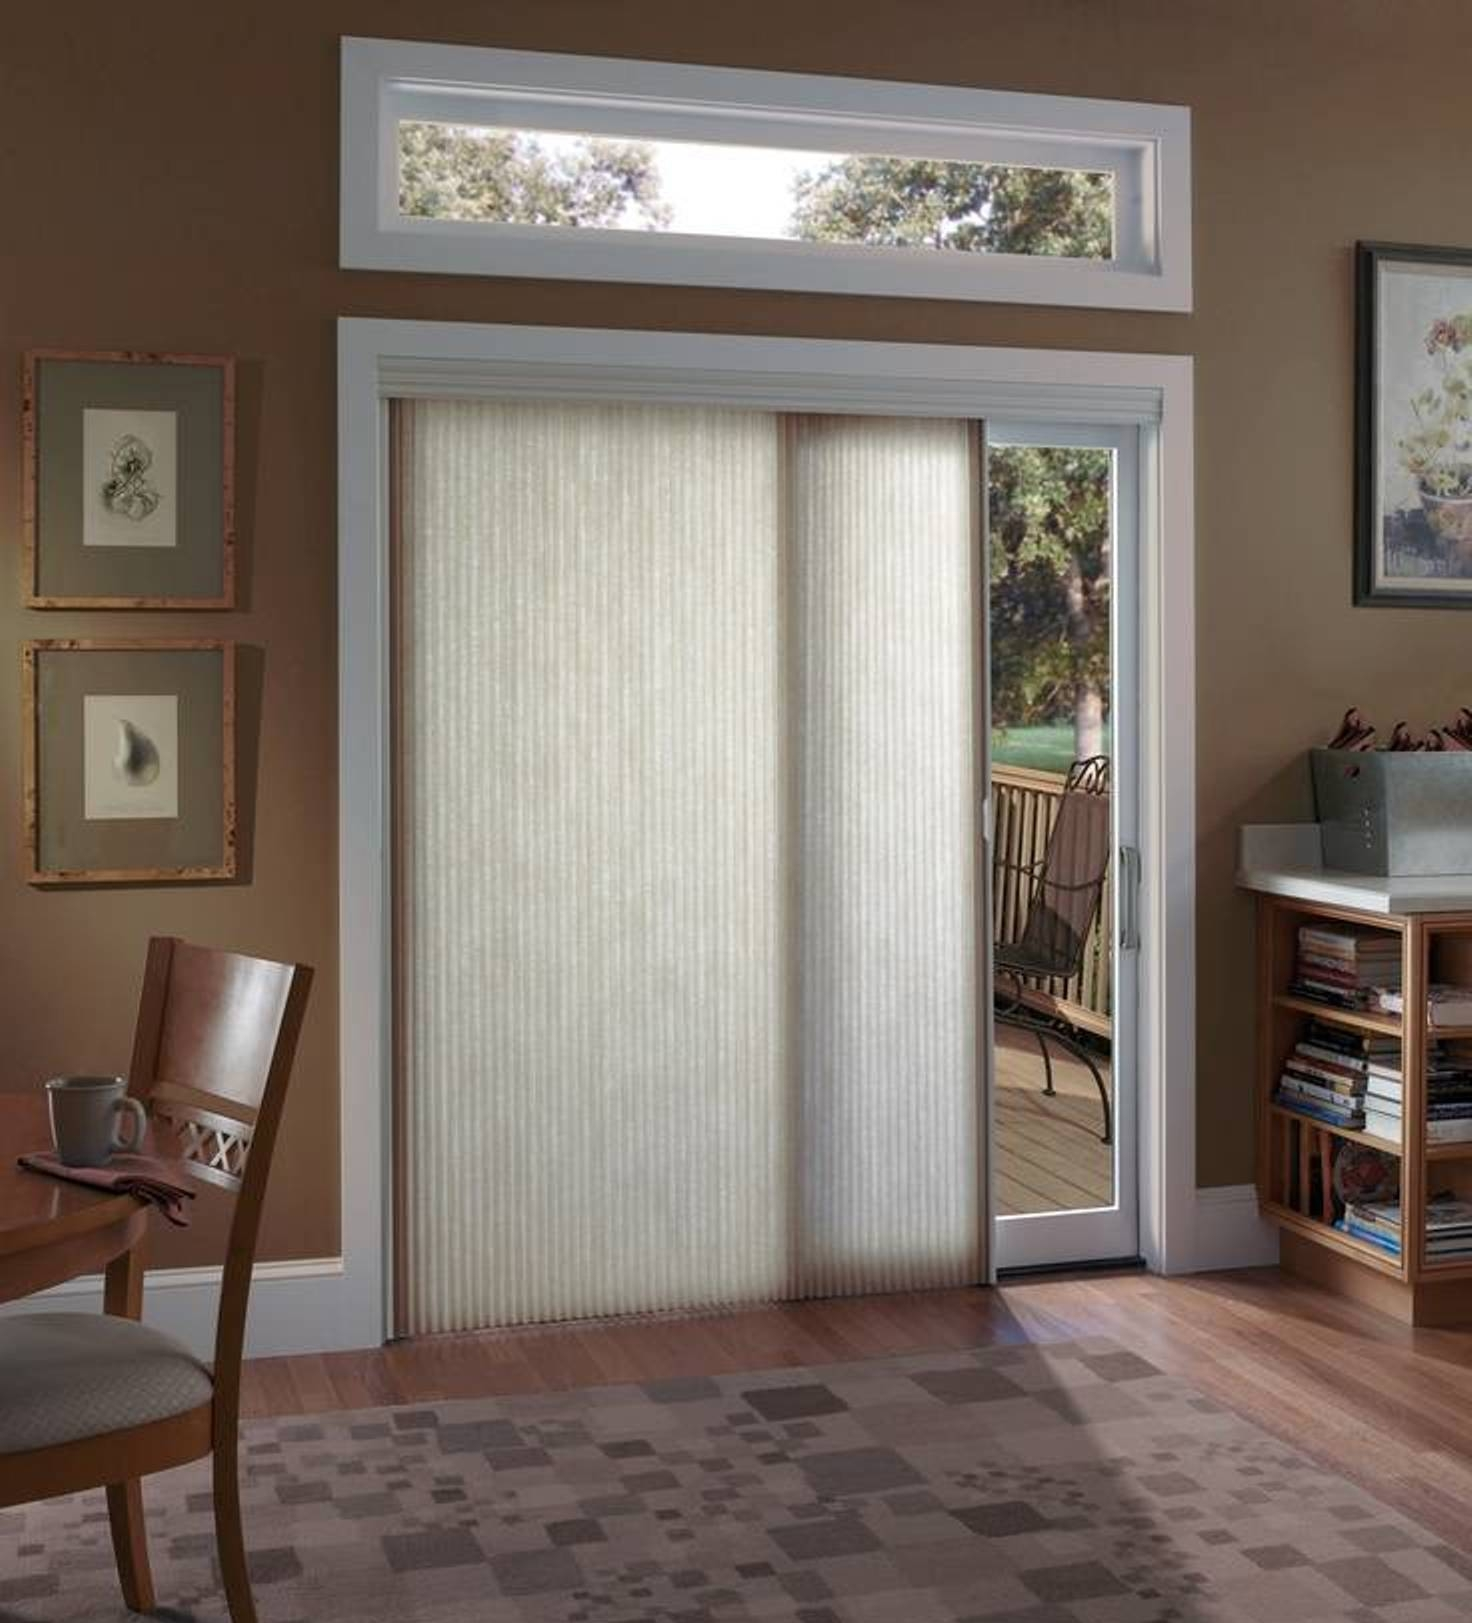 Sliding Door Covers Ideacurtain ideas for sliding doors best sliding door window